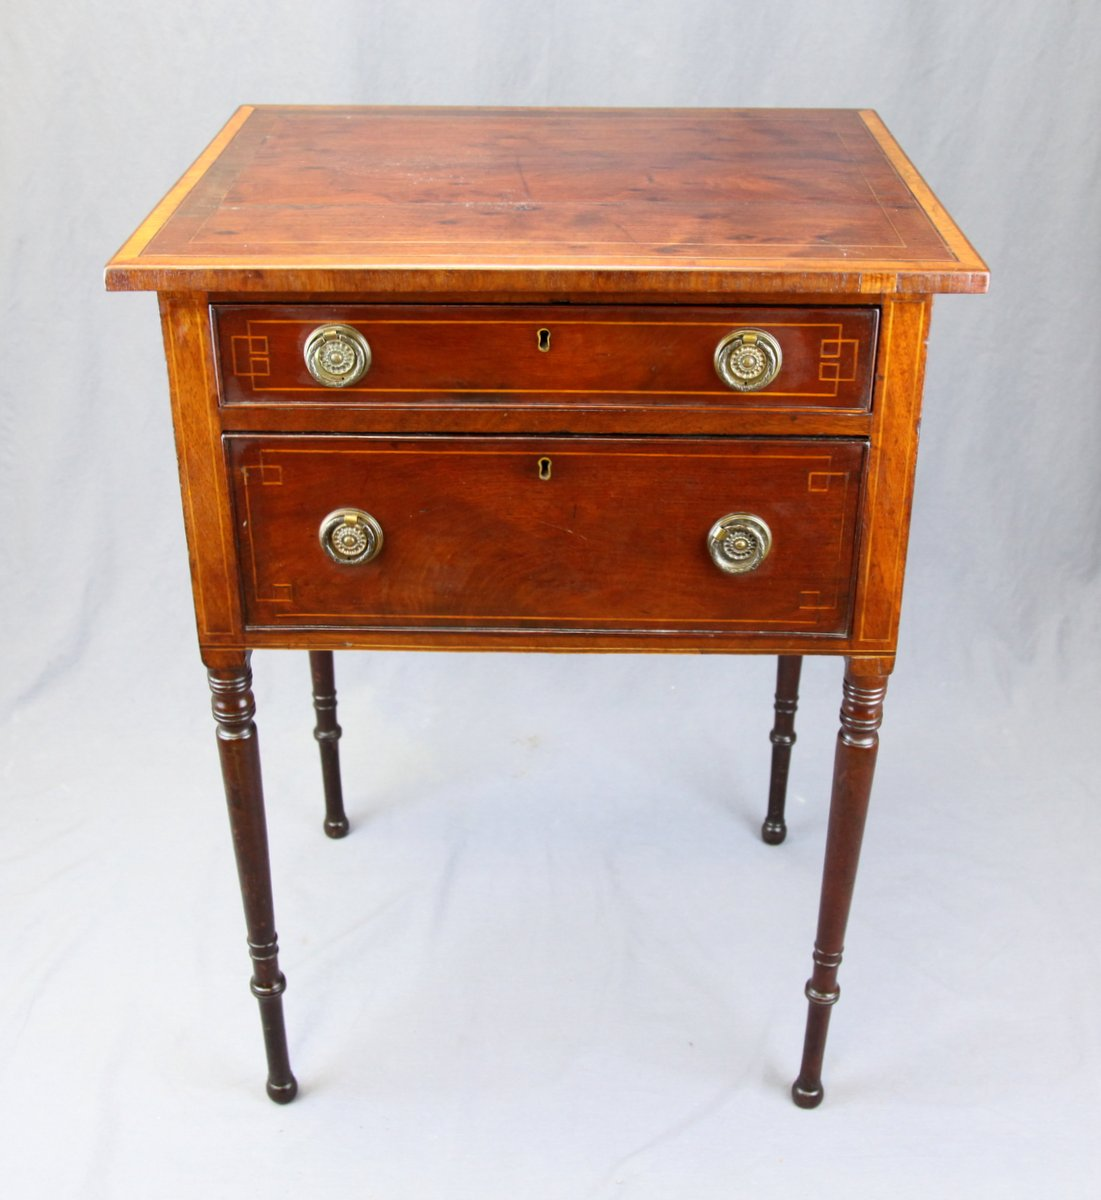 Halifax 2-Drawer Stand, Possibly Tulles